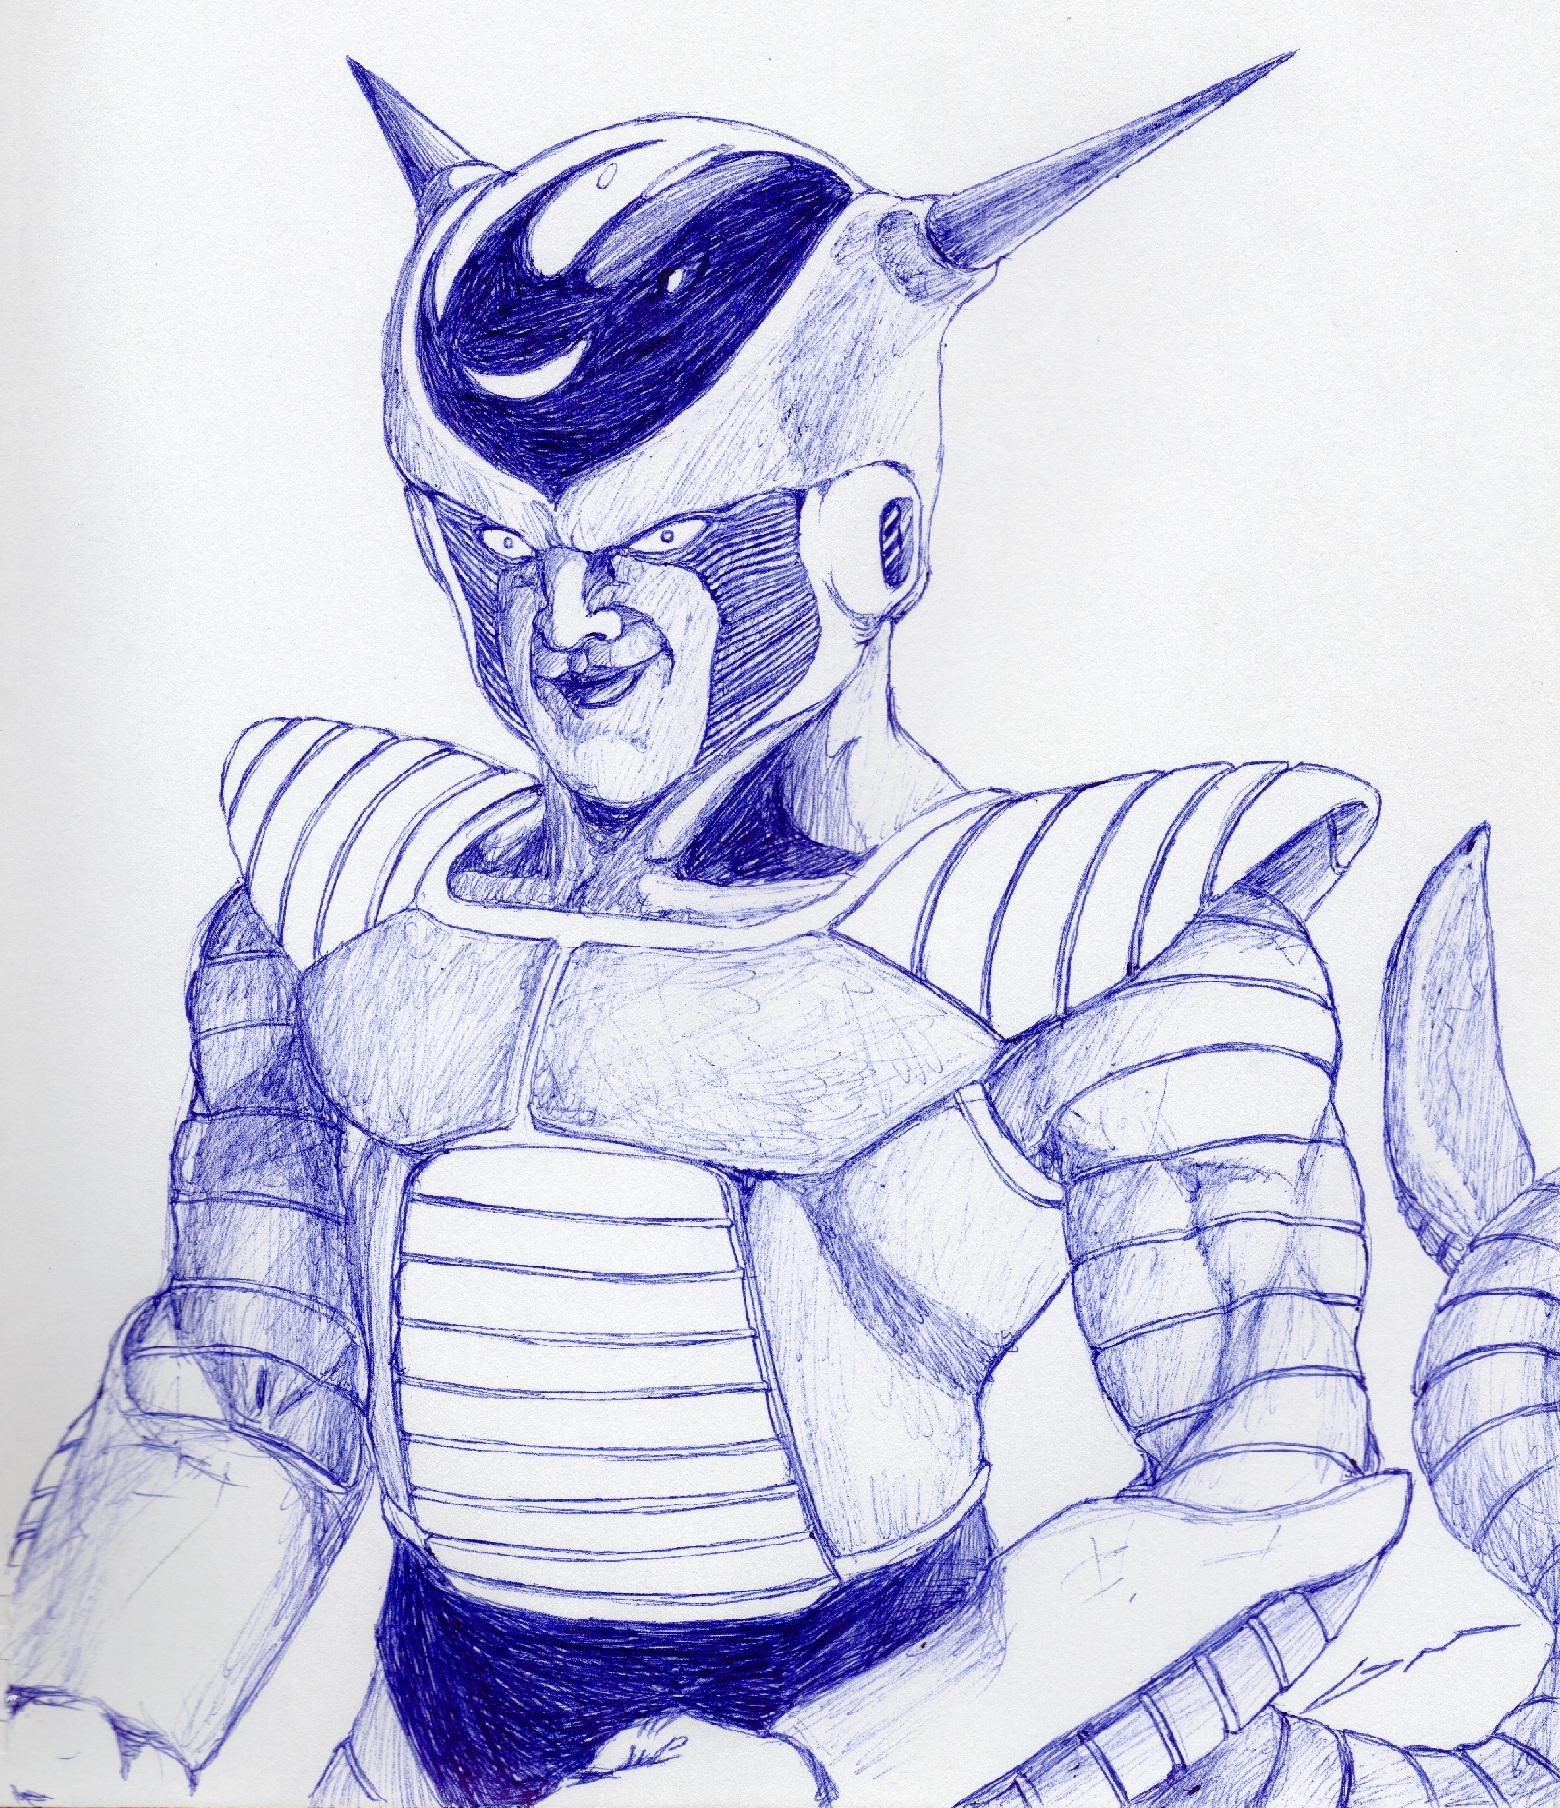 Mis dibujos de Dragon Ball HQ - Vol.2